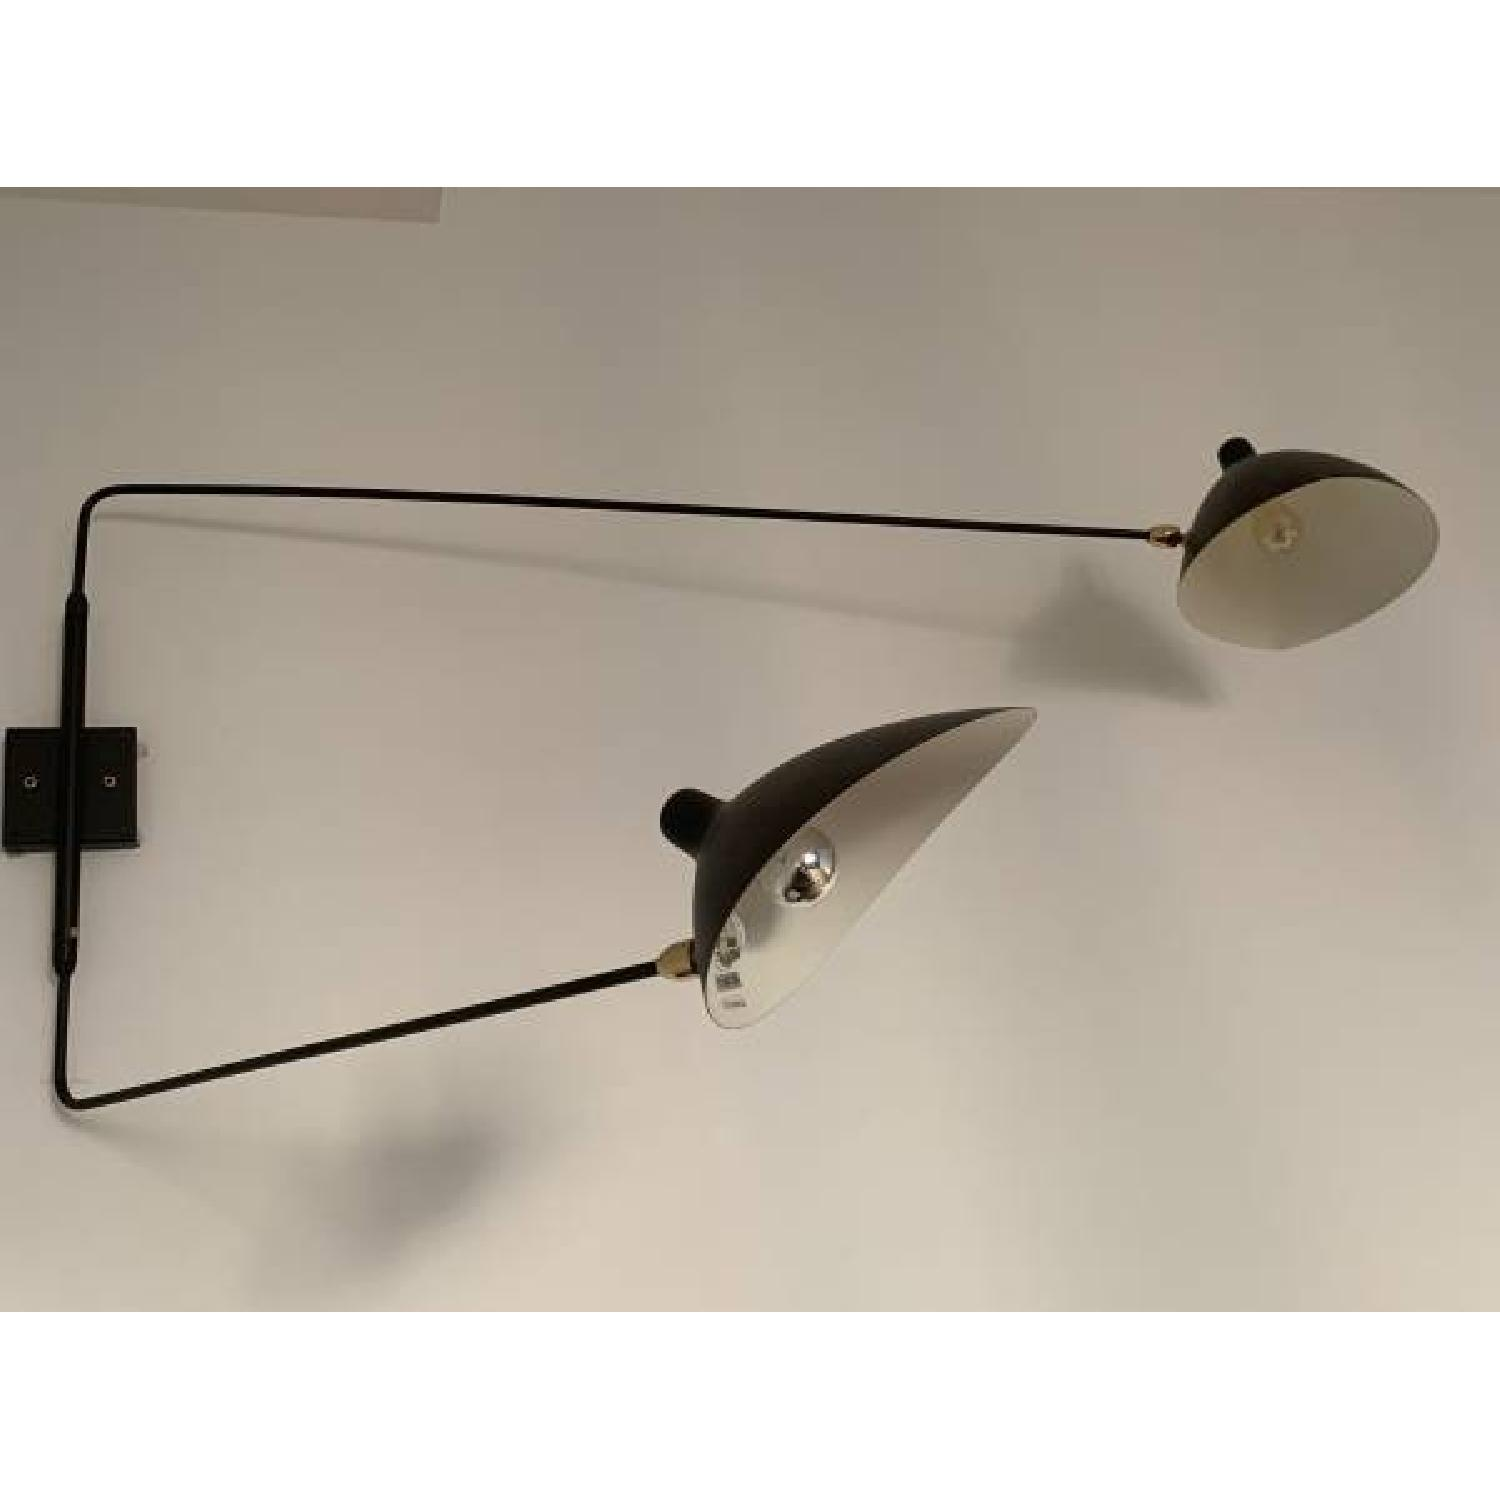 France & Son Serge Mouille Inspired Swing Arm Wall Lamp-5